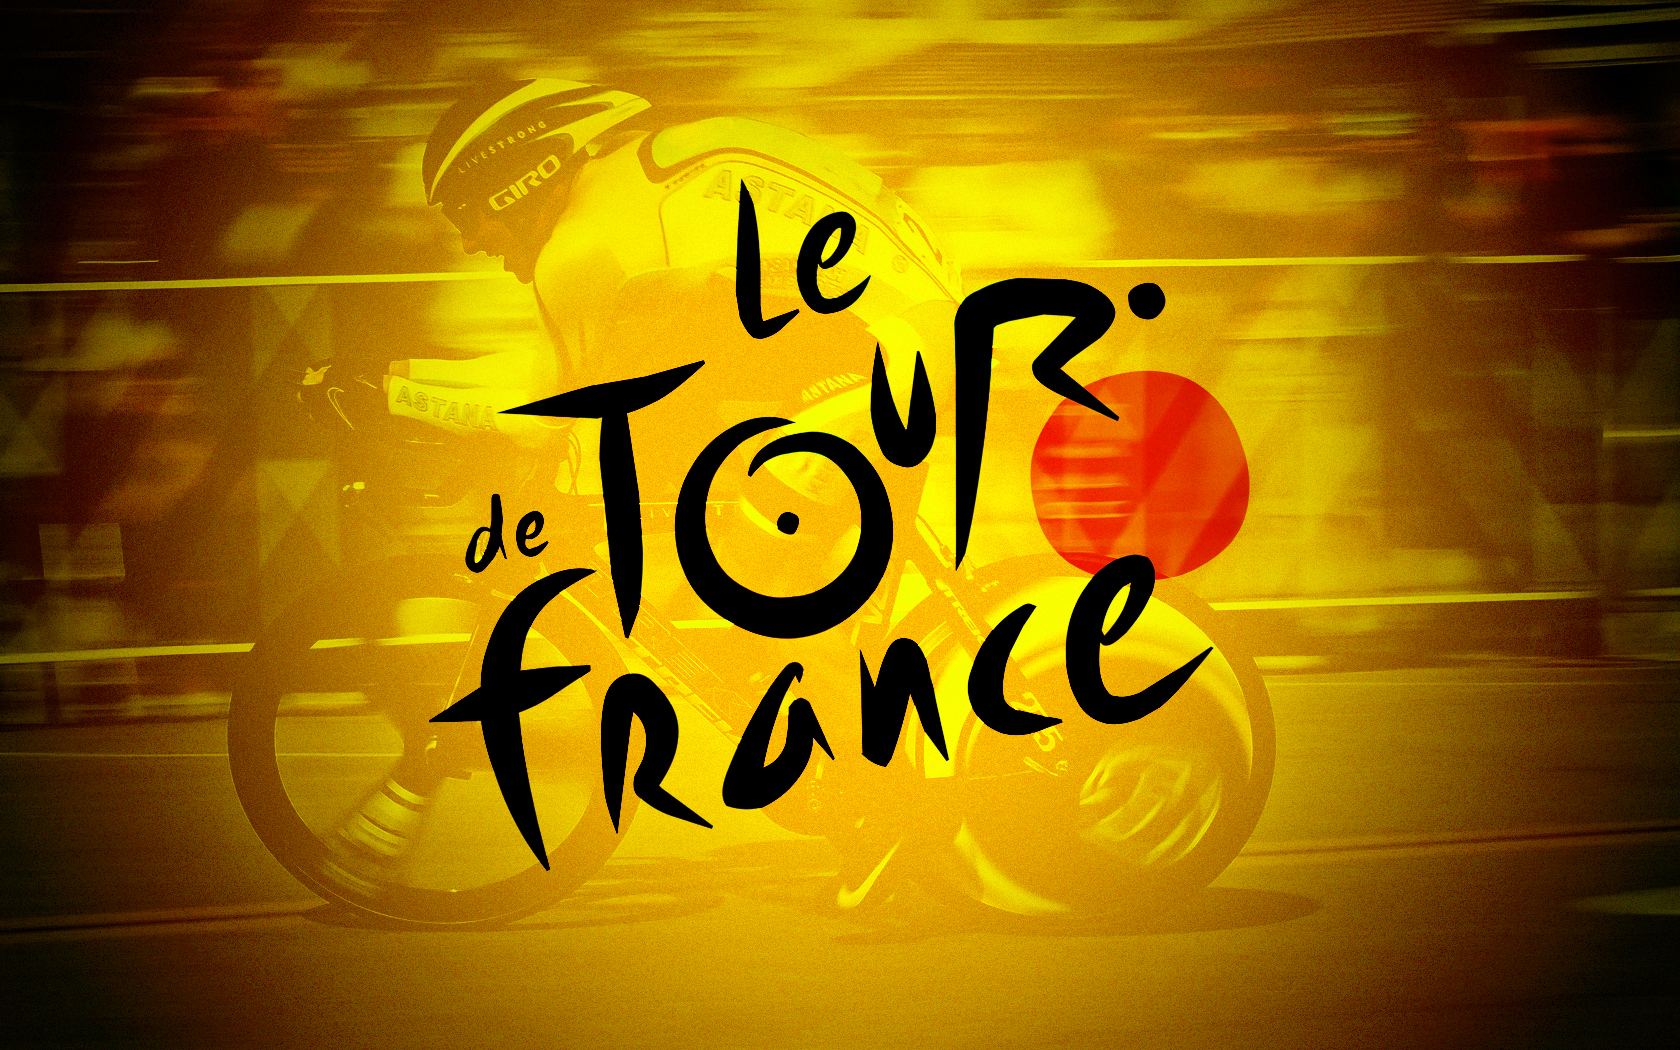 98th Tour de France Facing More Drug Potholes 1680x1050